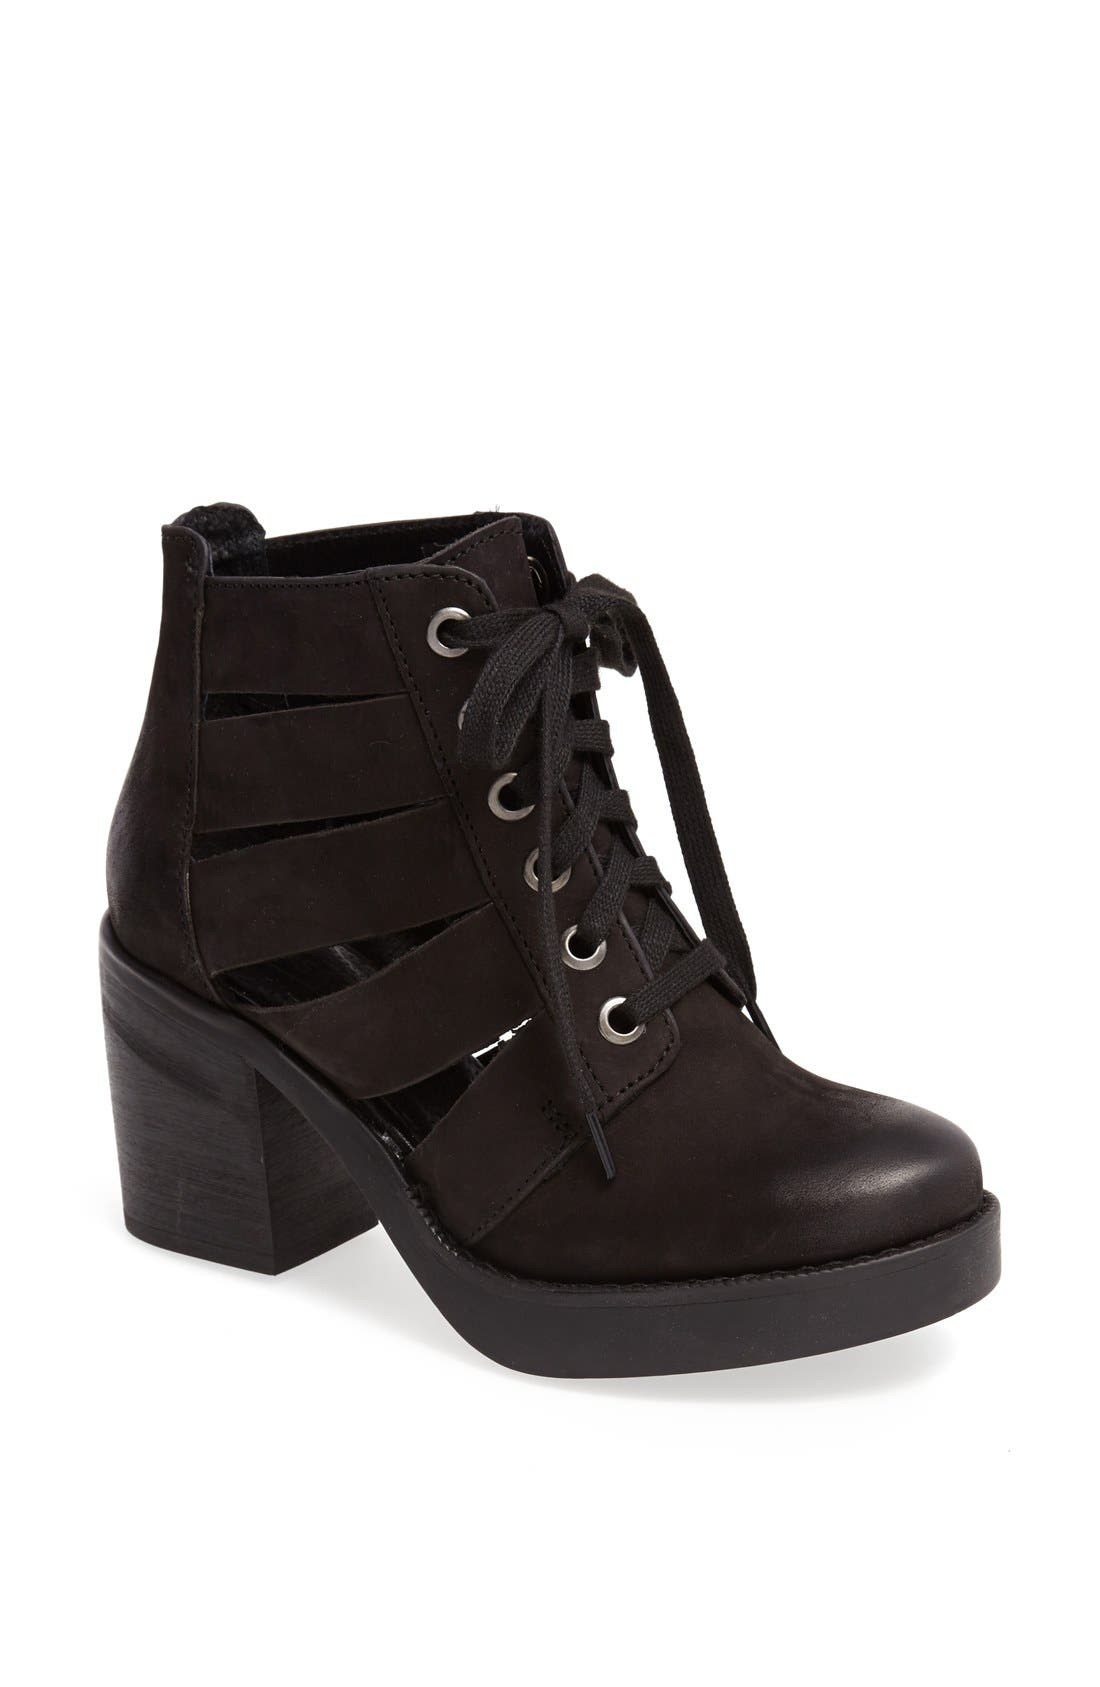 Alternate Image 1 Selected - Topshop 'Anderson' Leather Boot